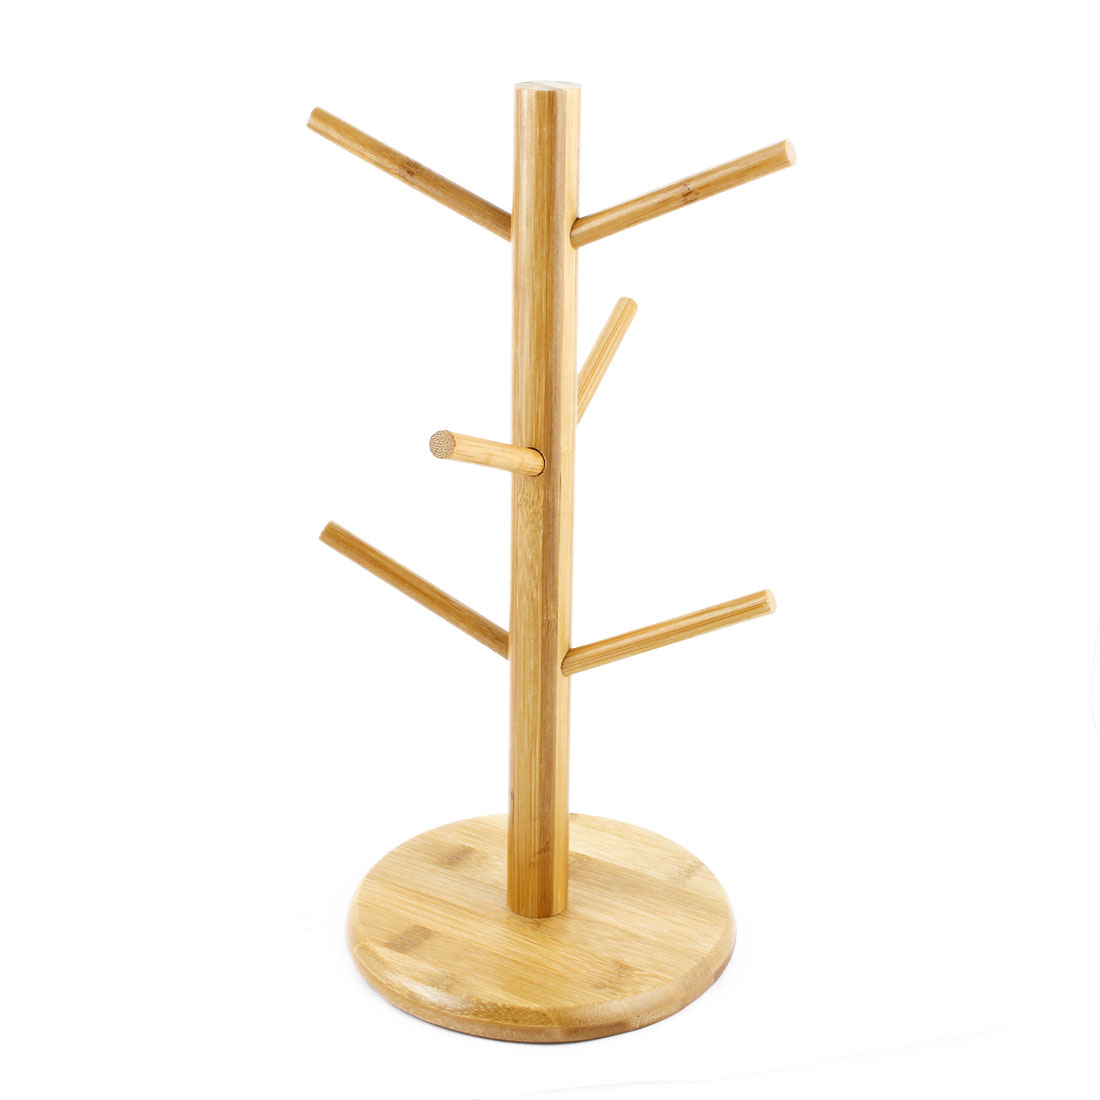 Household Bamboo Hanging Display Coffee Tea Glass Cup Holder Bracket Mug Tree Walmart Canada